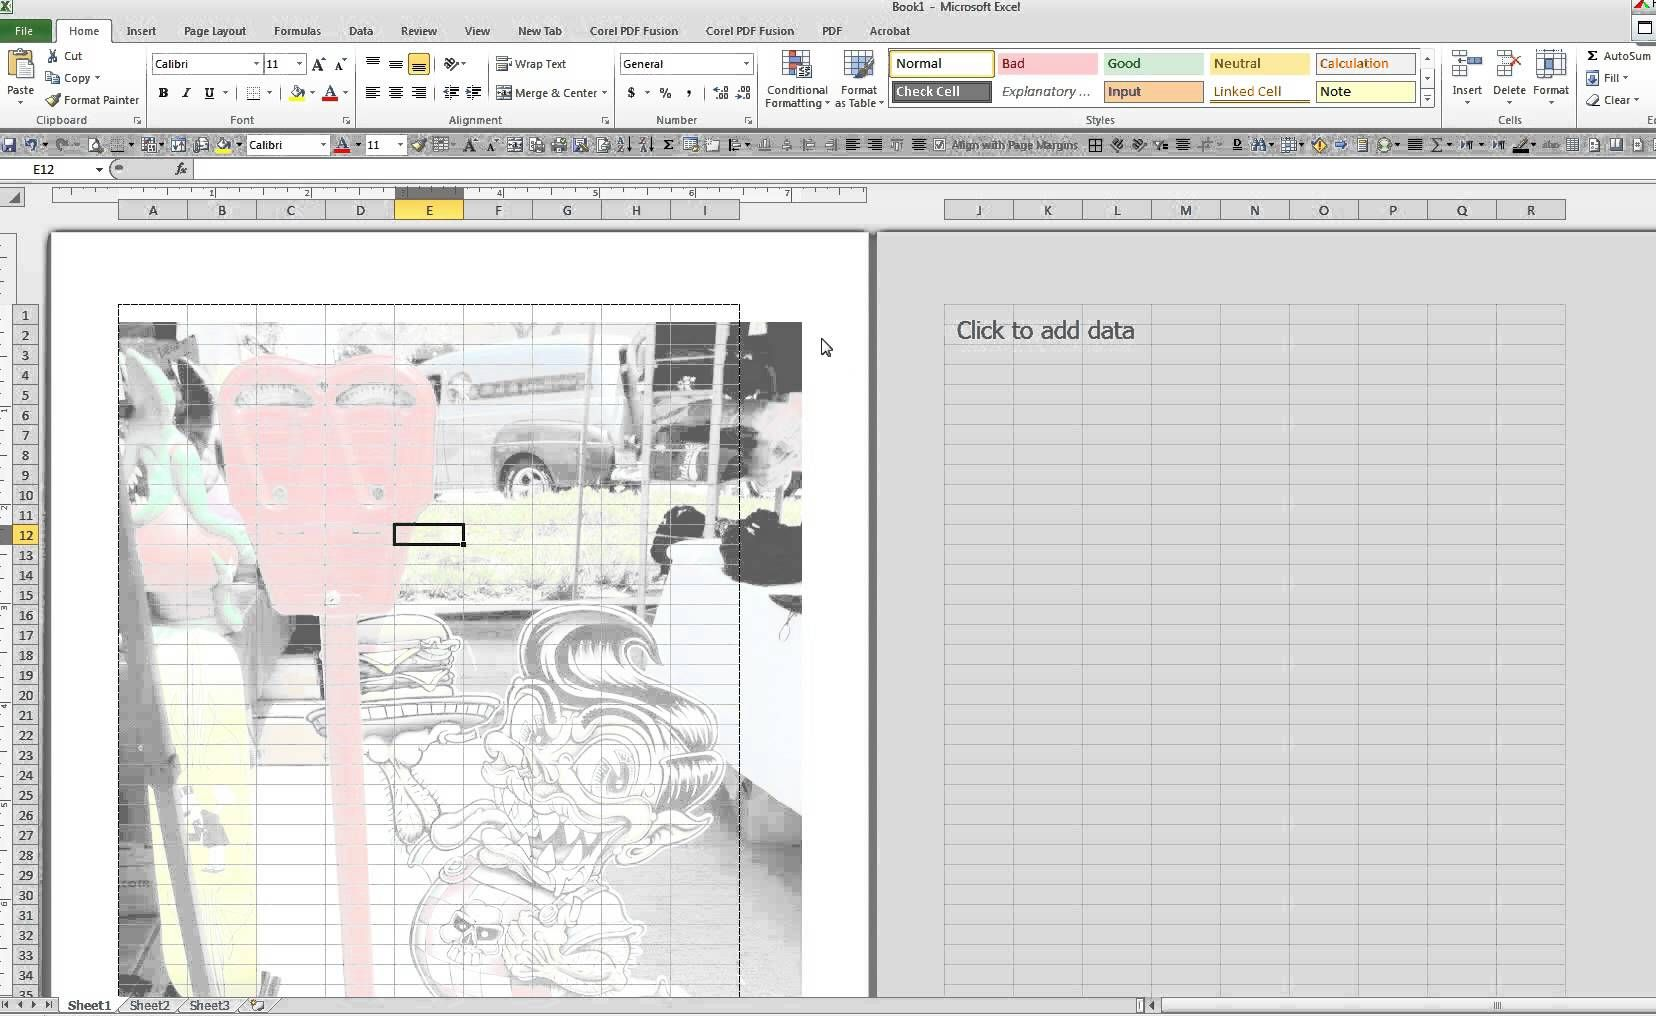 How To Place An Image As A Watermark In A Microsoft Excel